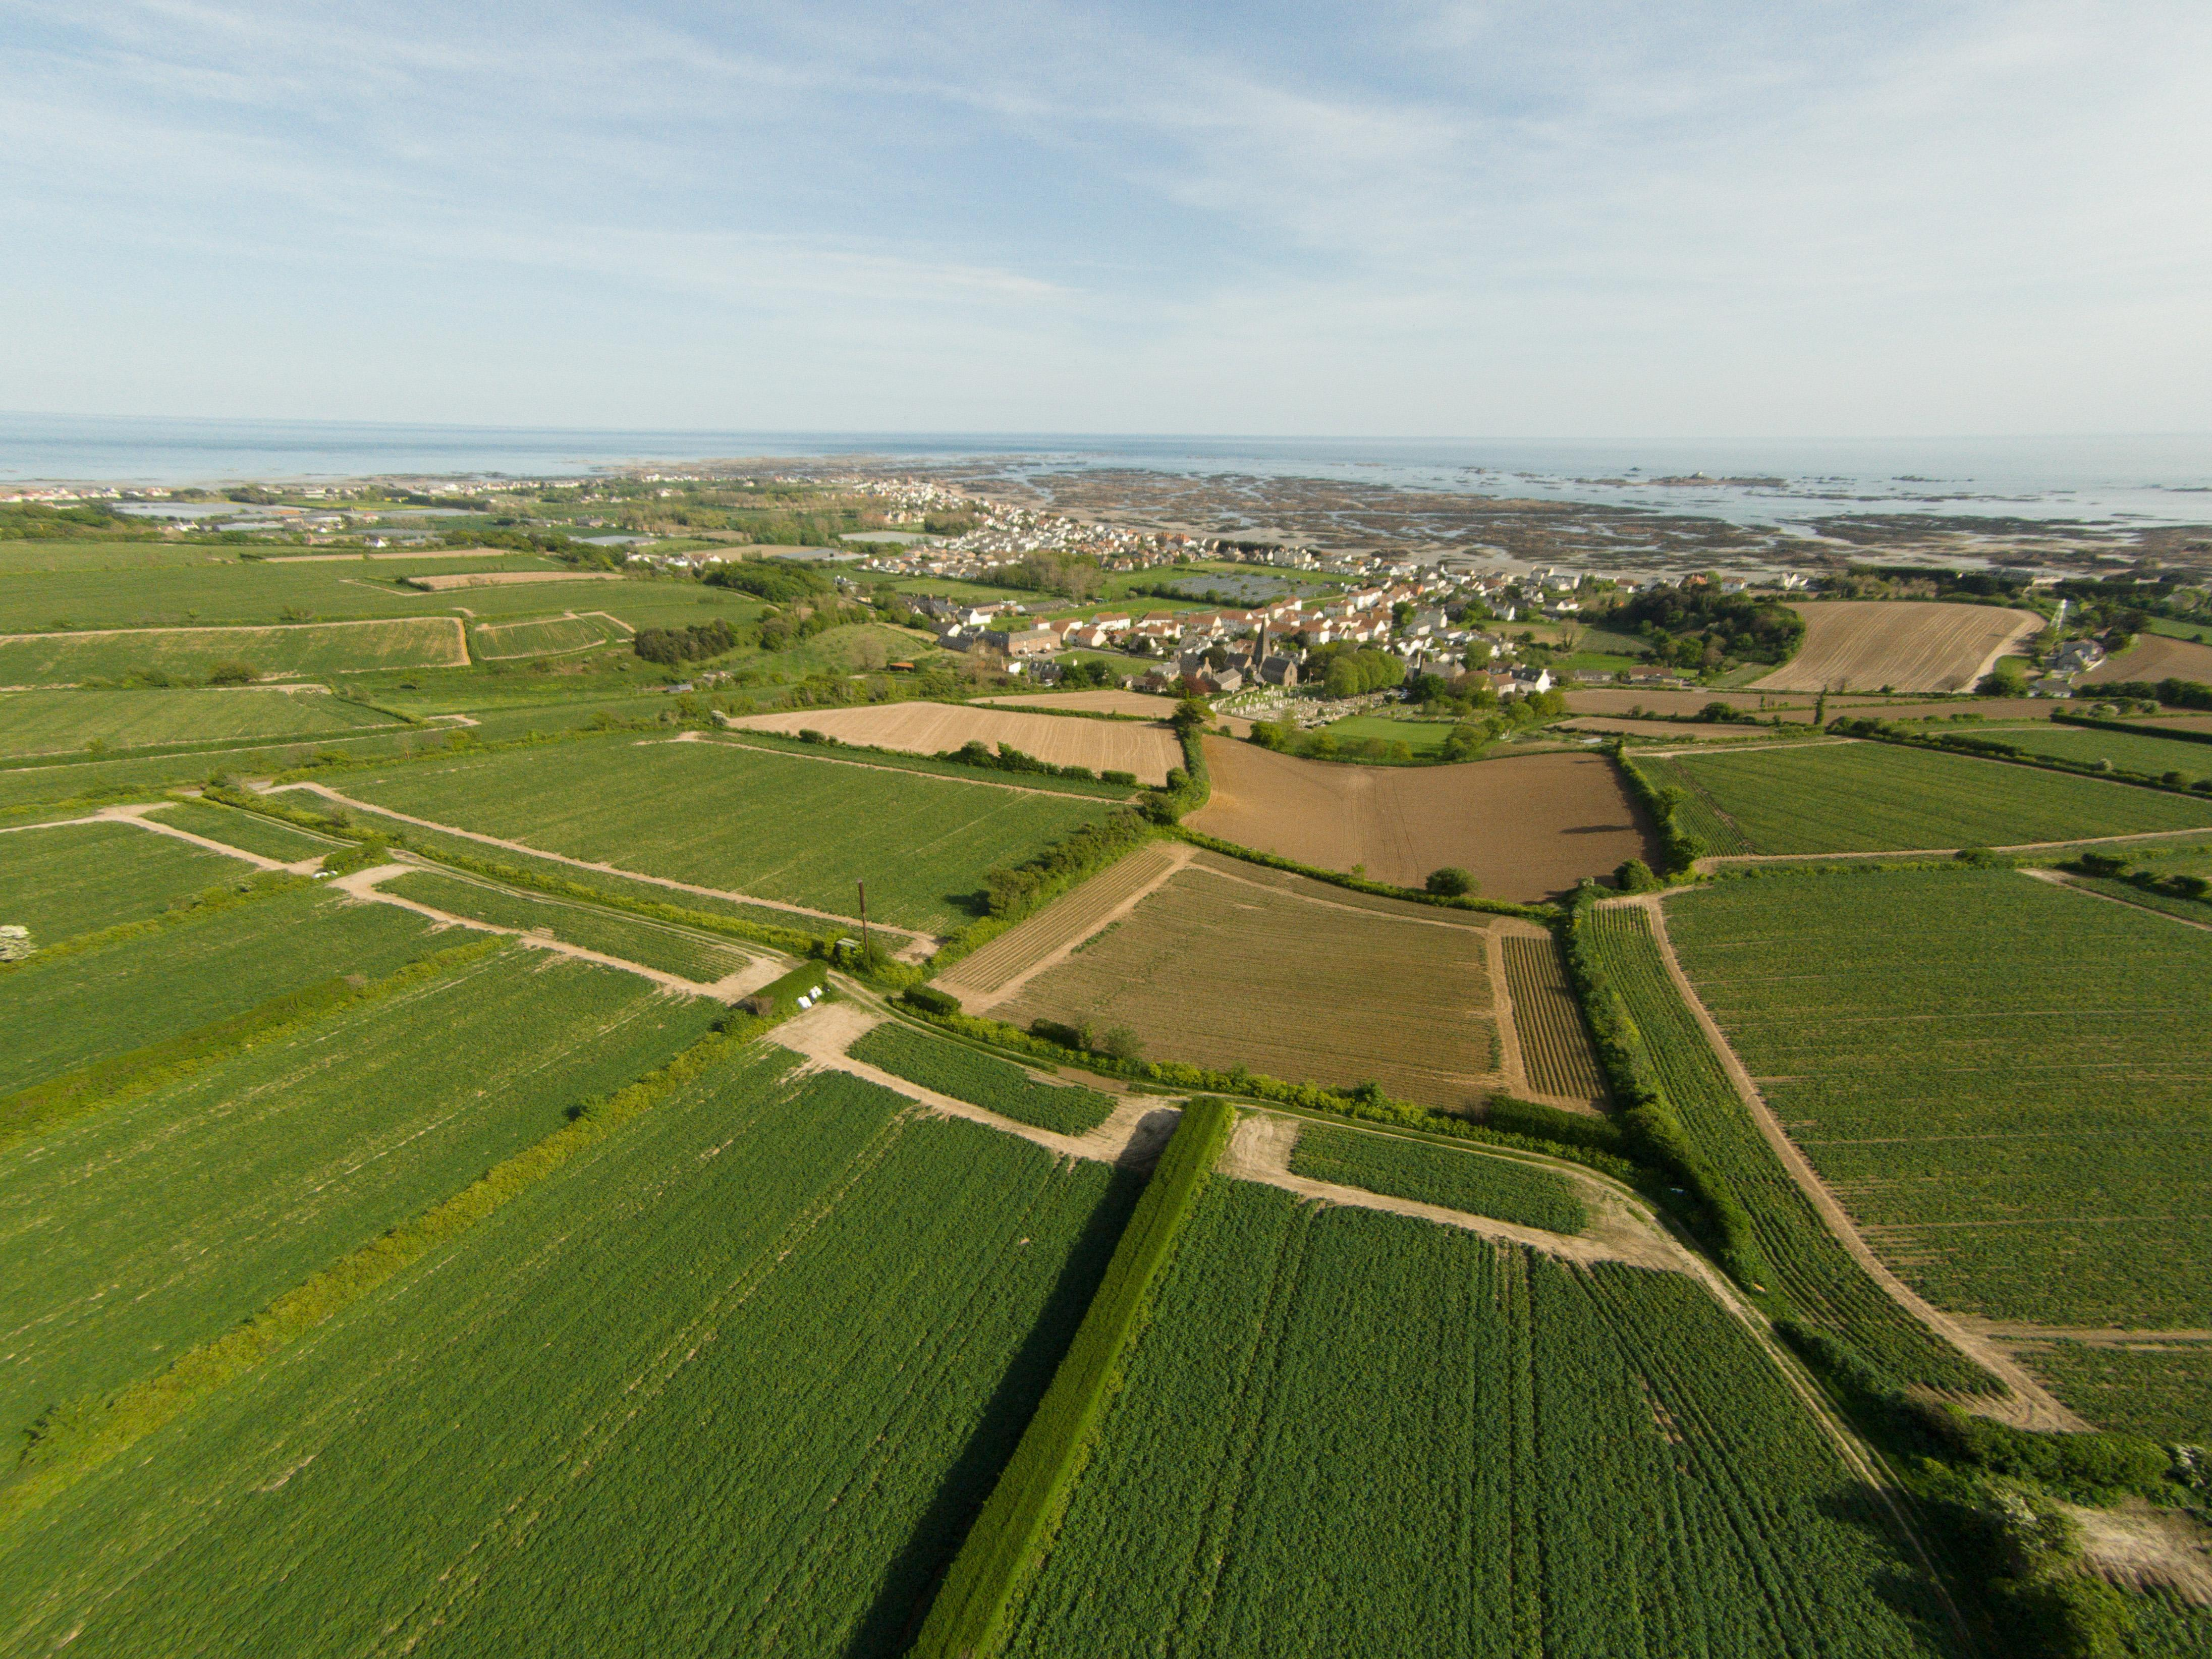 Aerial_view_of_fields_in_St_Clement,_Jersey